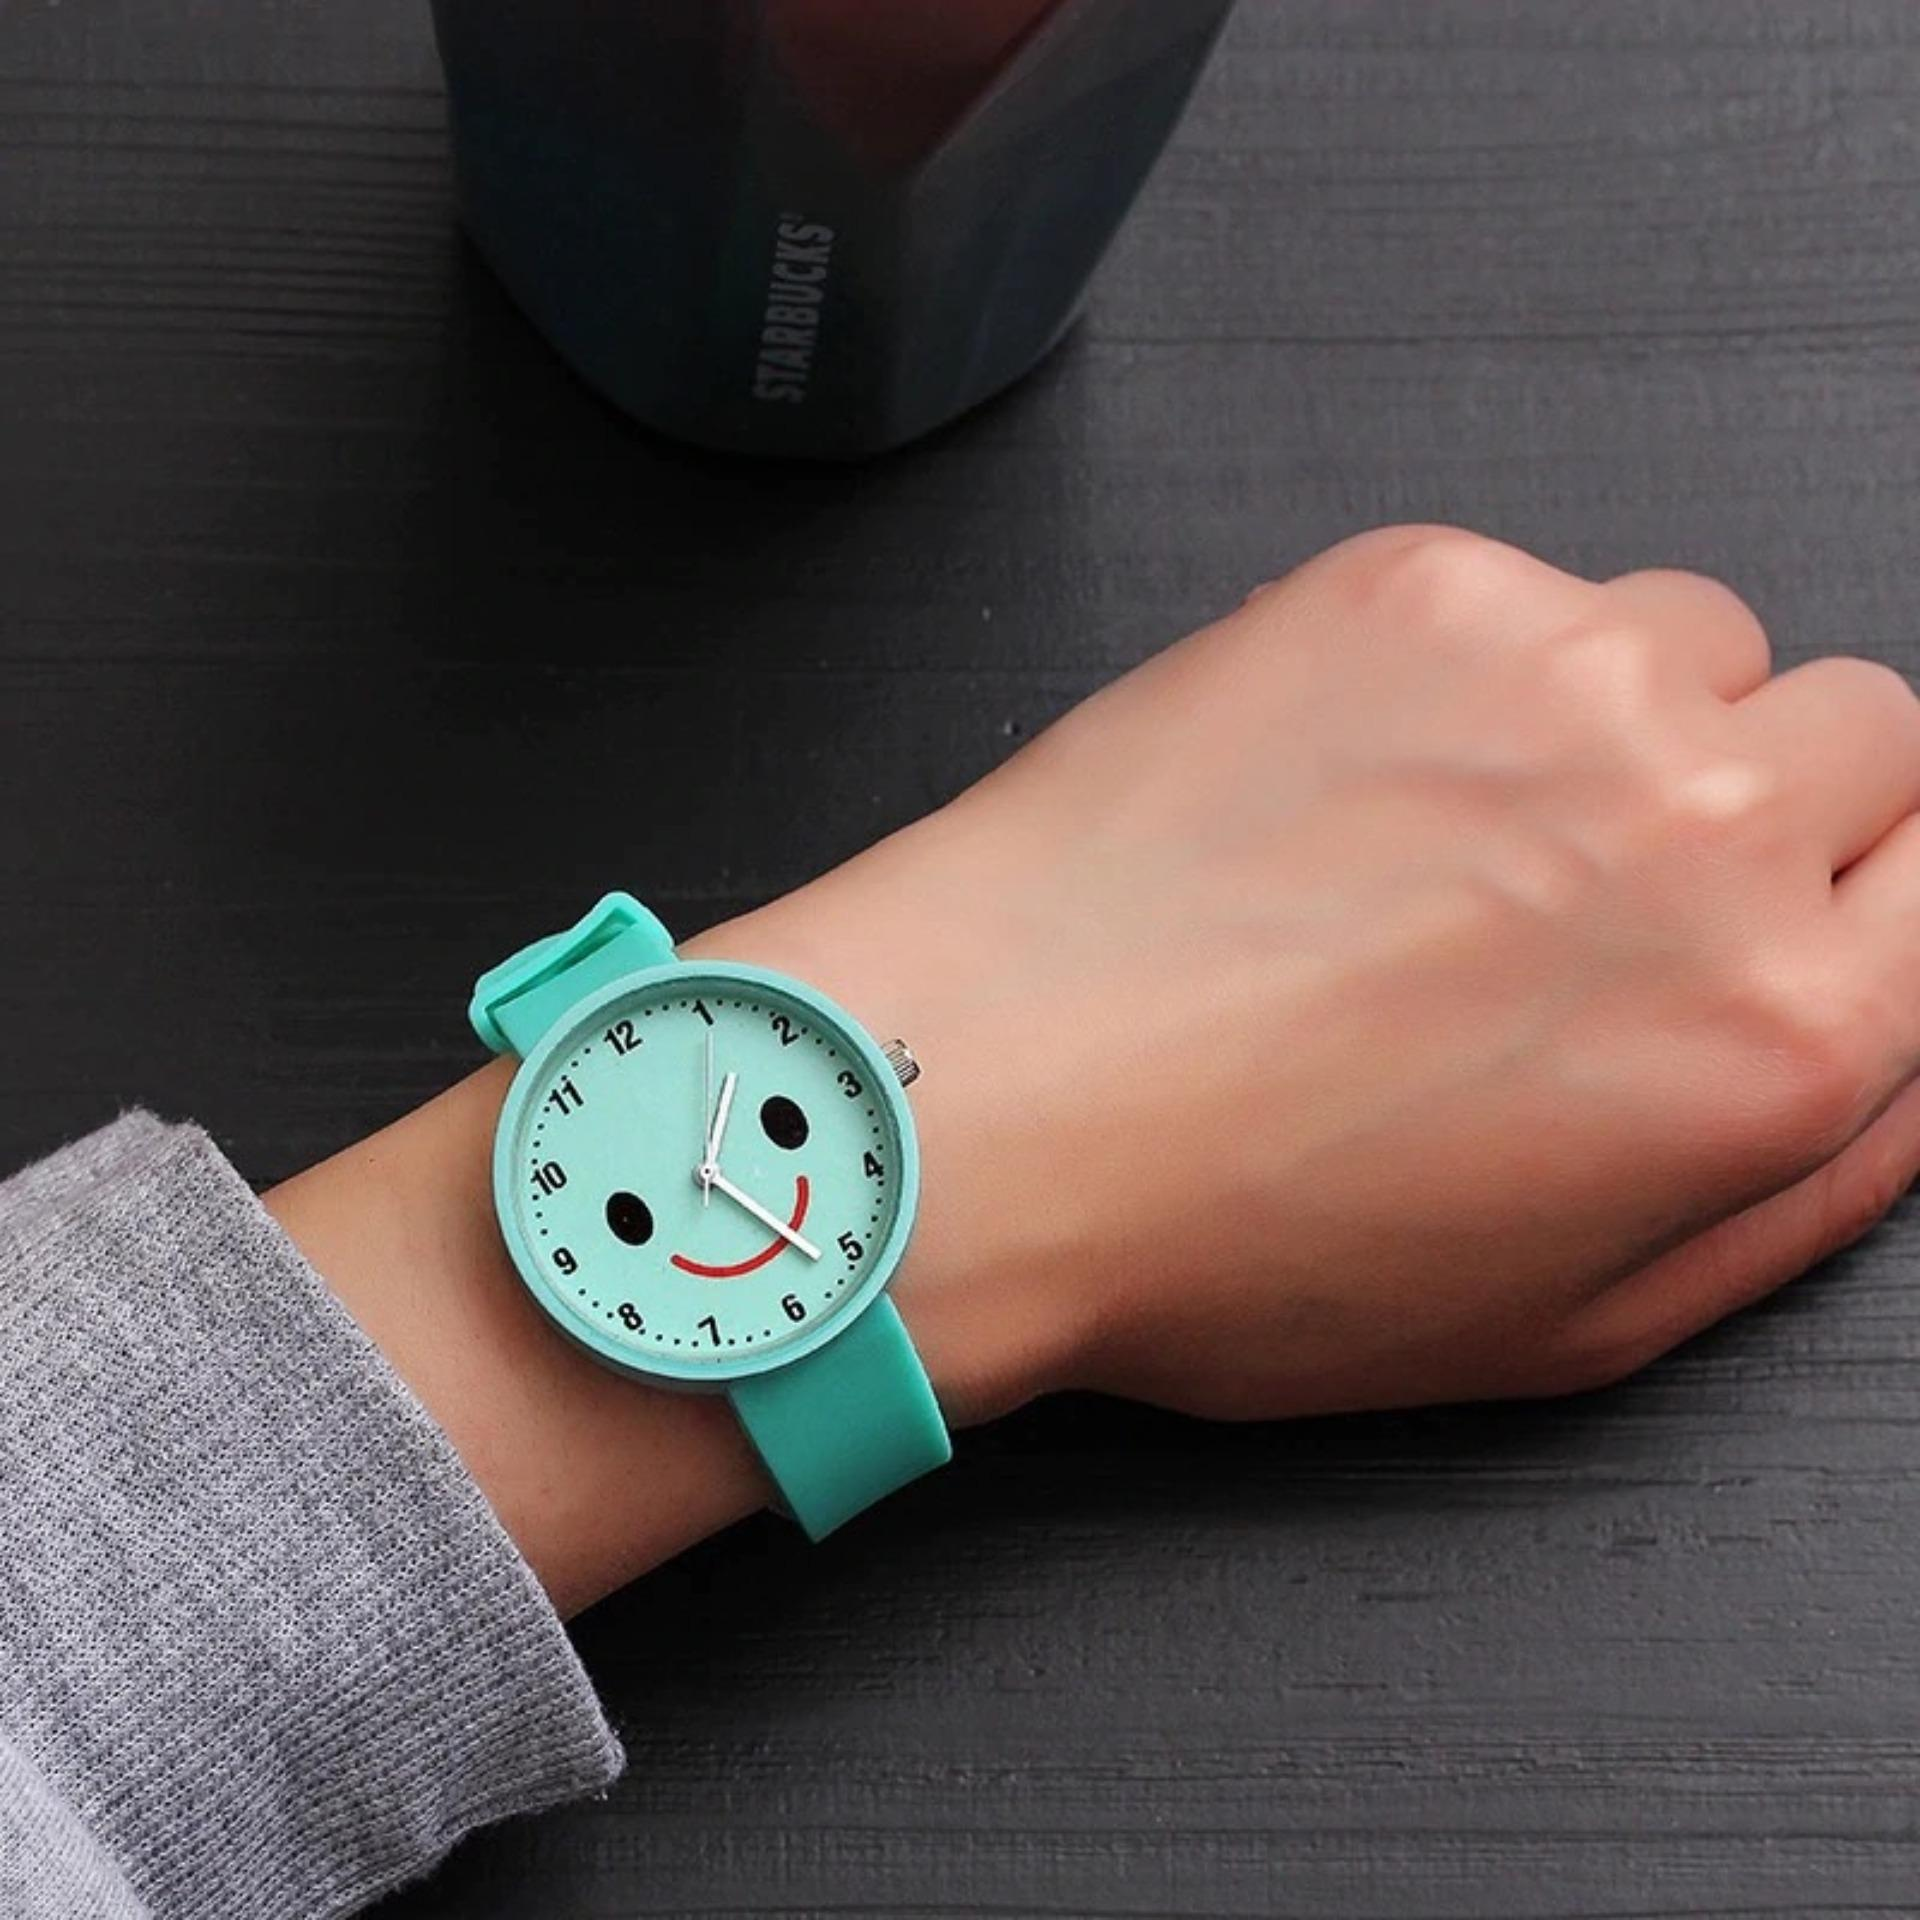 Jelly Smile Fashion Watch SML5080 - Jam Tangan Fashion - Jam Tangan Wanita - Jam Tangan Remaja